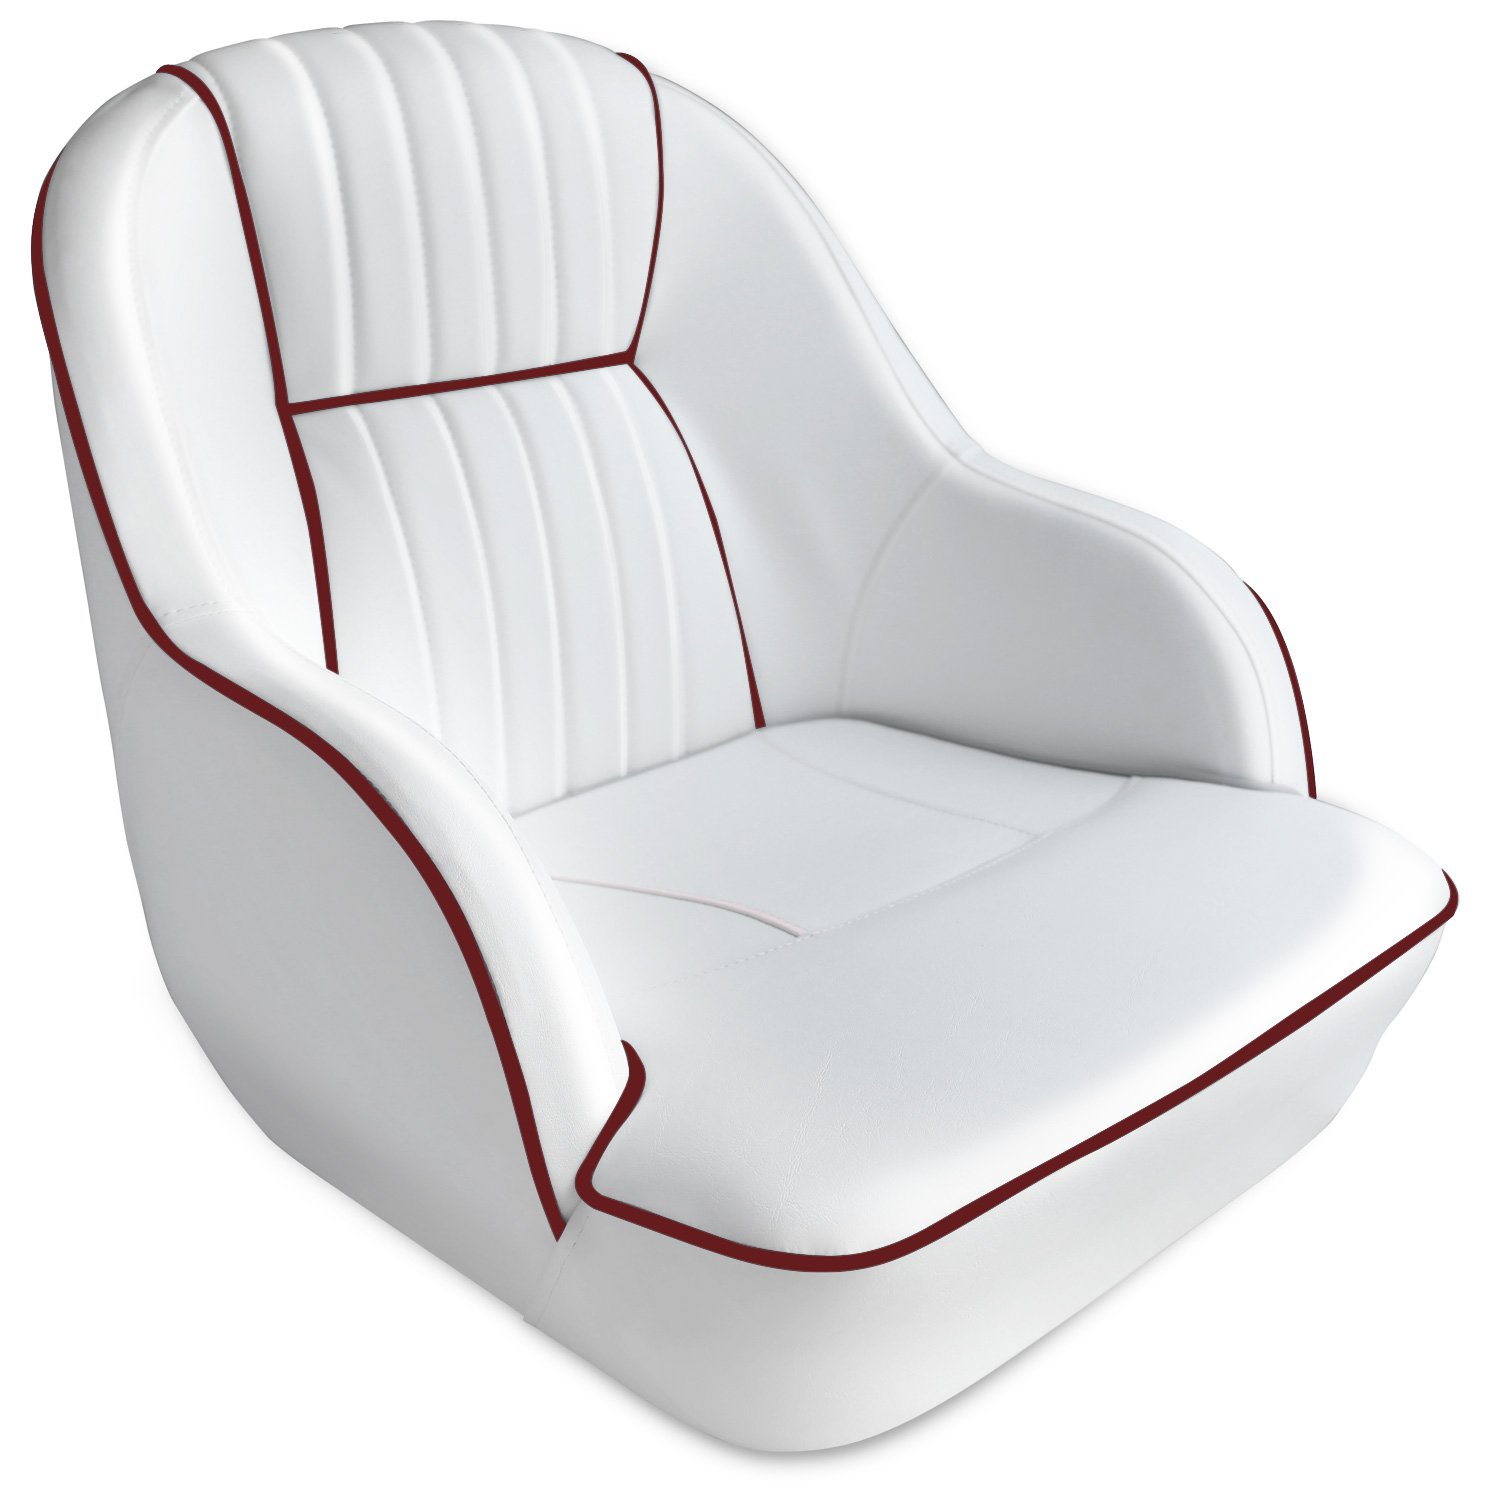 Leader Accessories Pontoon Captains Bucket Seat Boat Seat (White/Dark Red Piping)